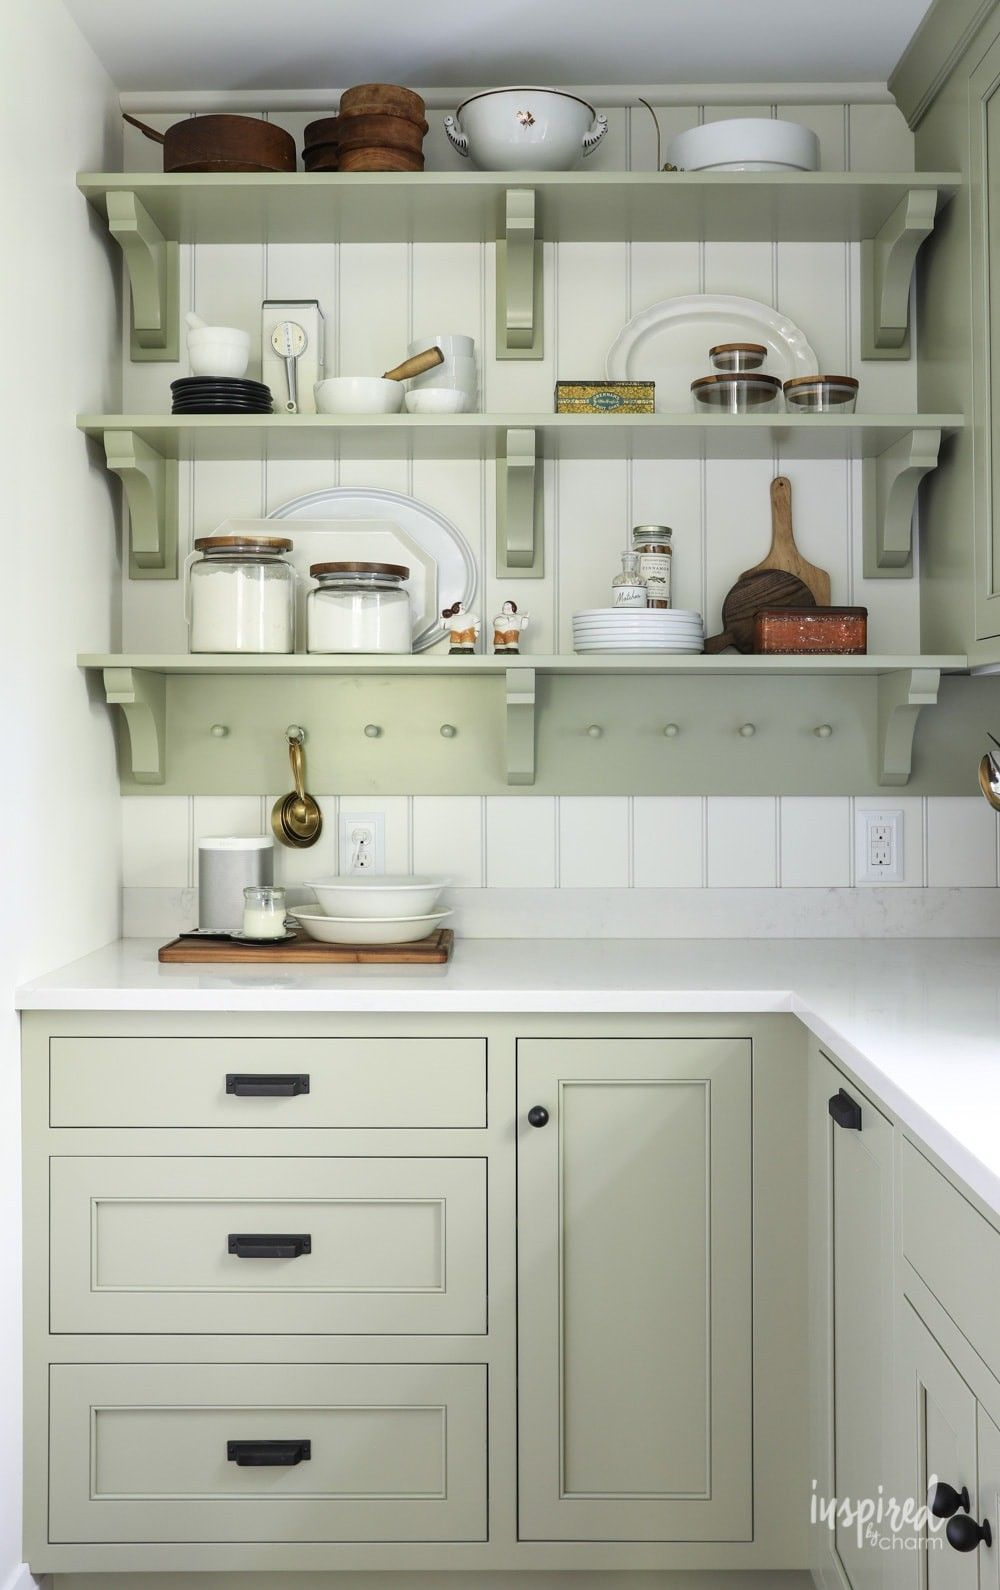 Pin By Barb On Wine Colors In 2020 Kitchen Remodel Kitchen Design Kitchen Renovation